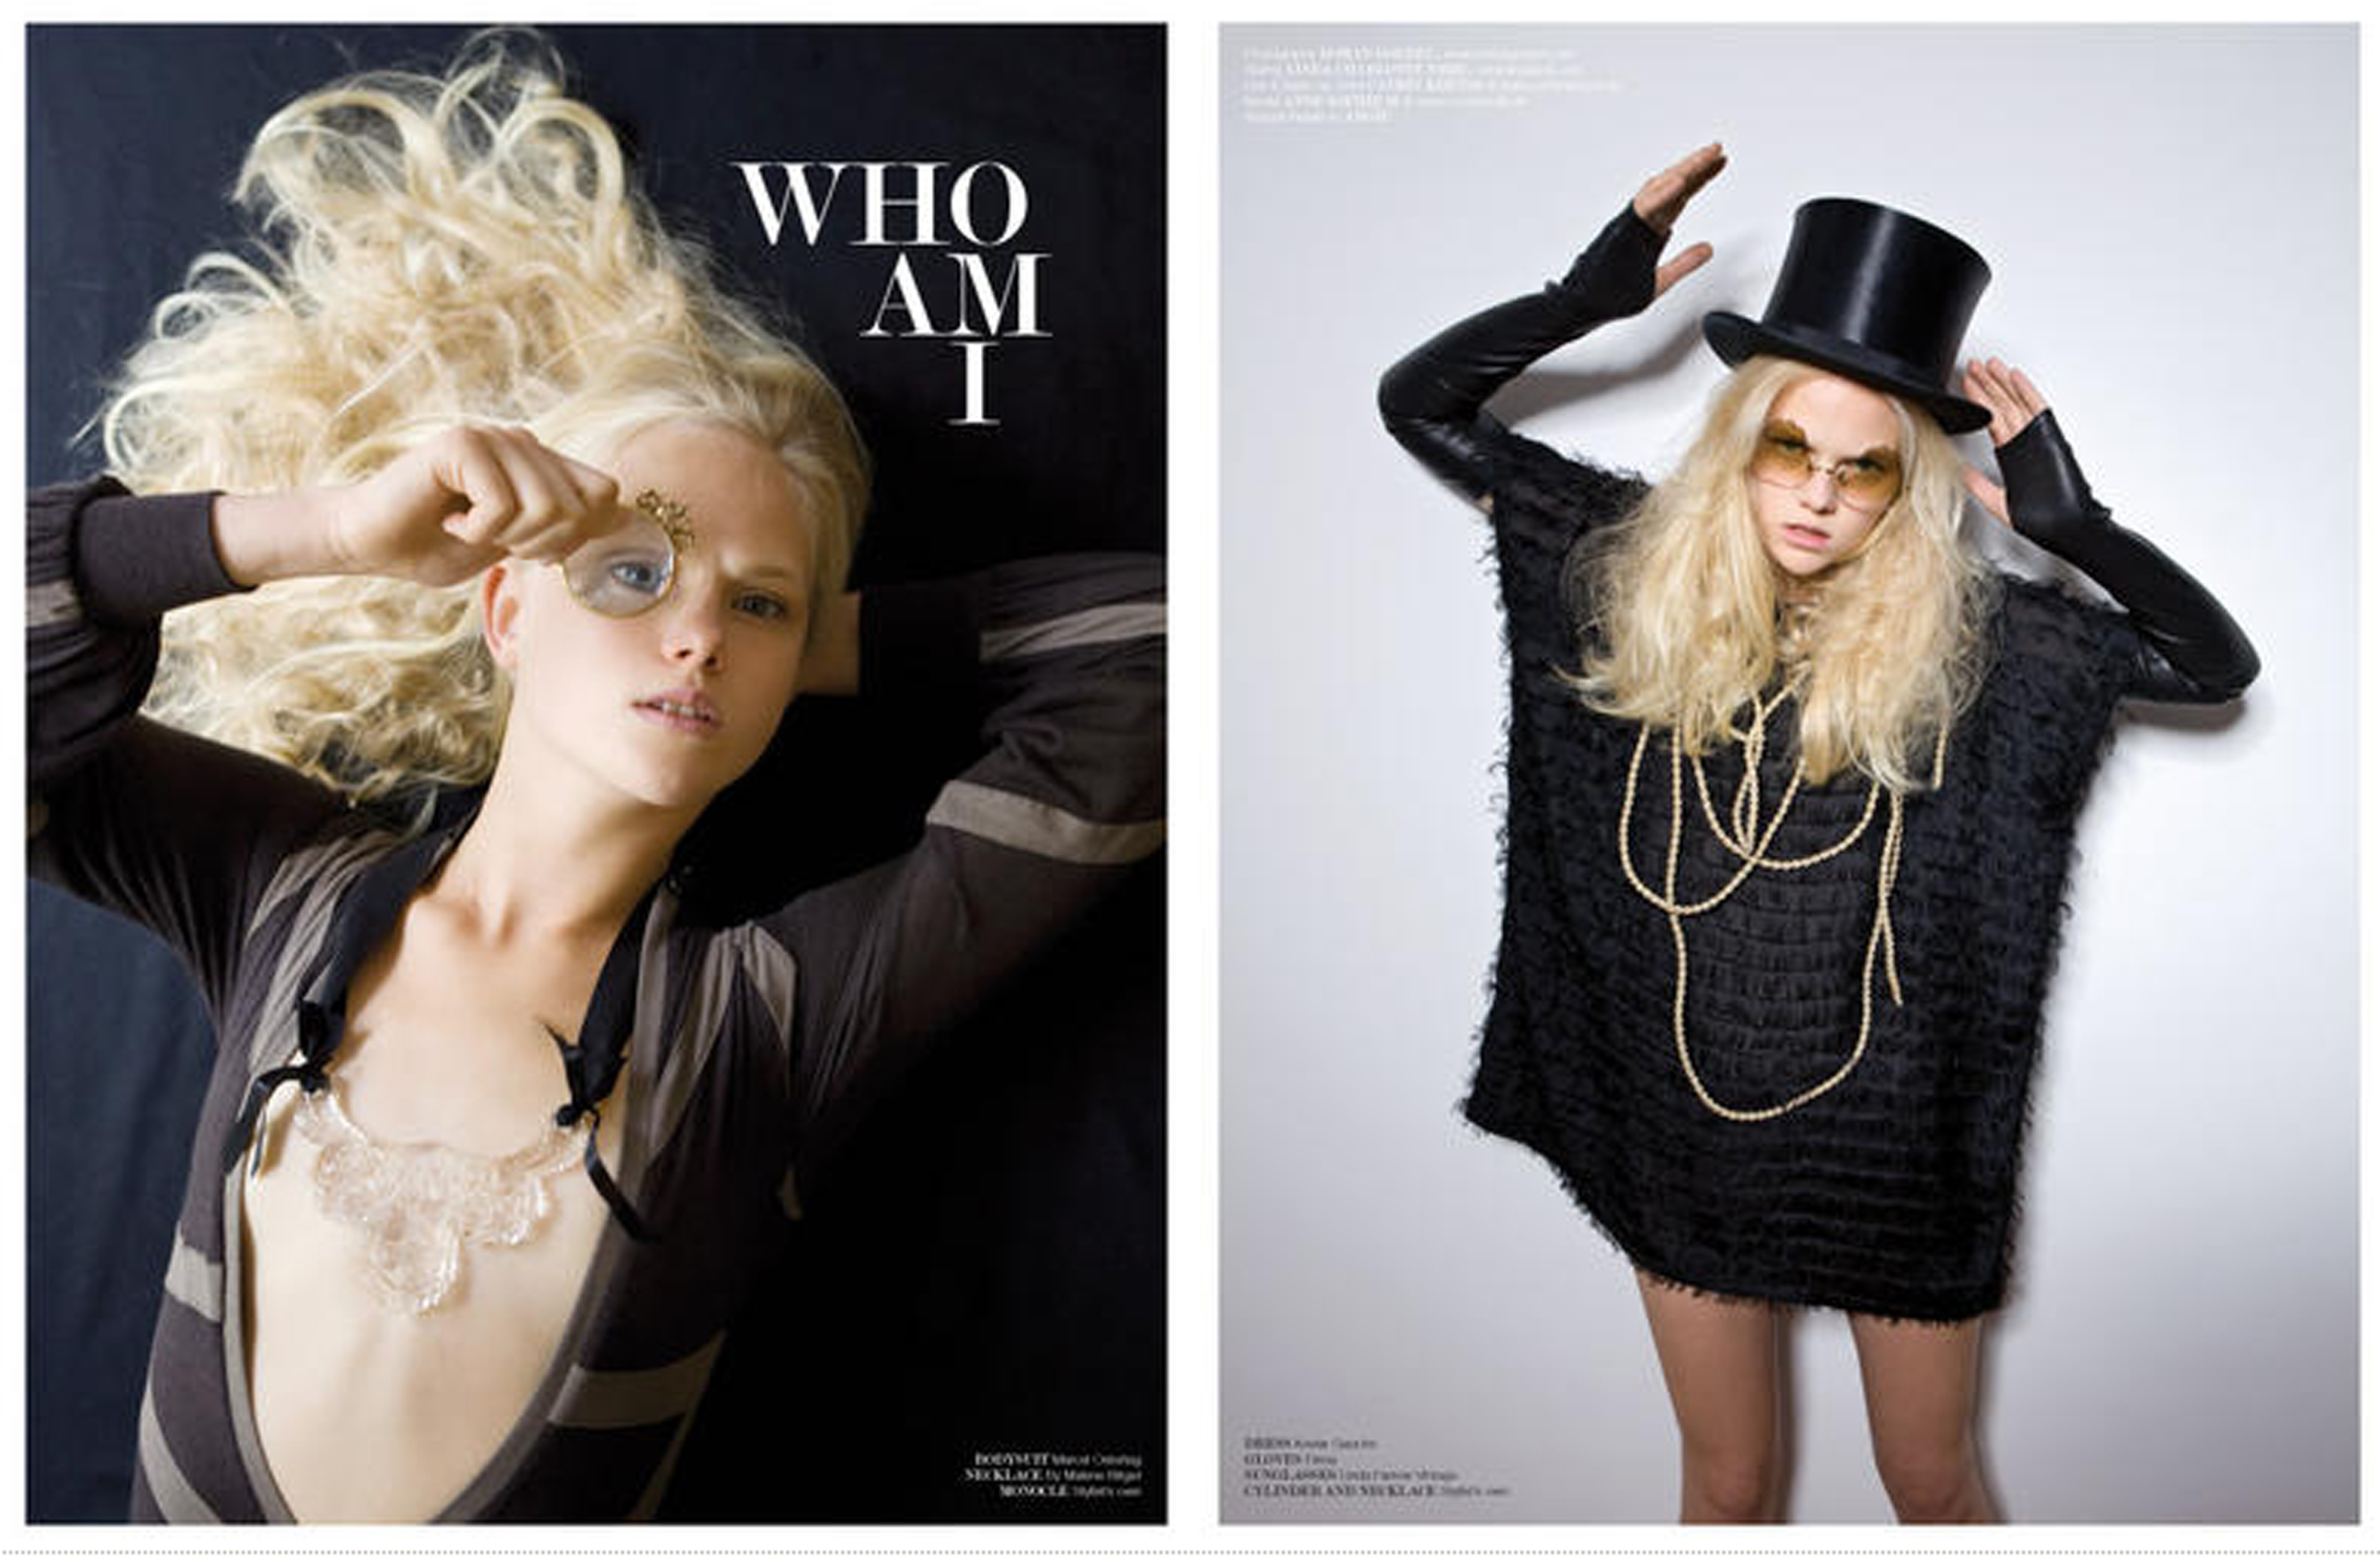 "J'N'C Magazine 2009/4, pg. 100.-101. ""Who I Am?"" – Photo: Christoph Voy; Model: Anne Sophie M"